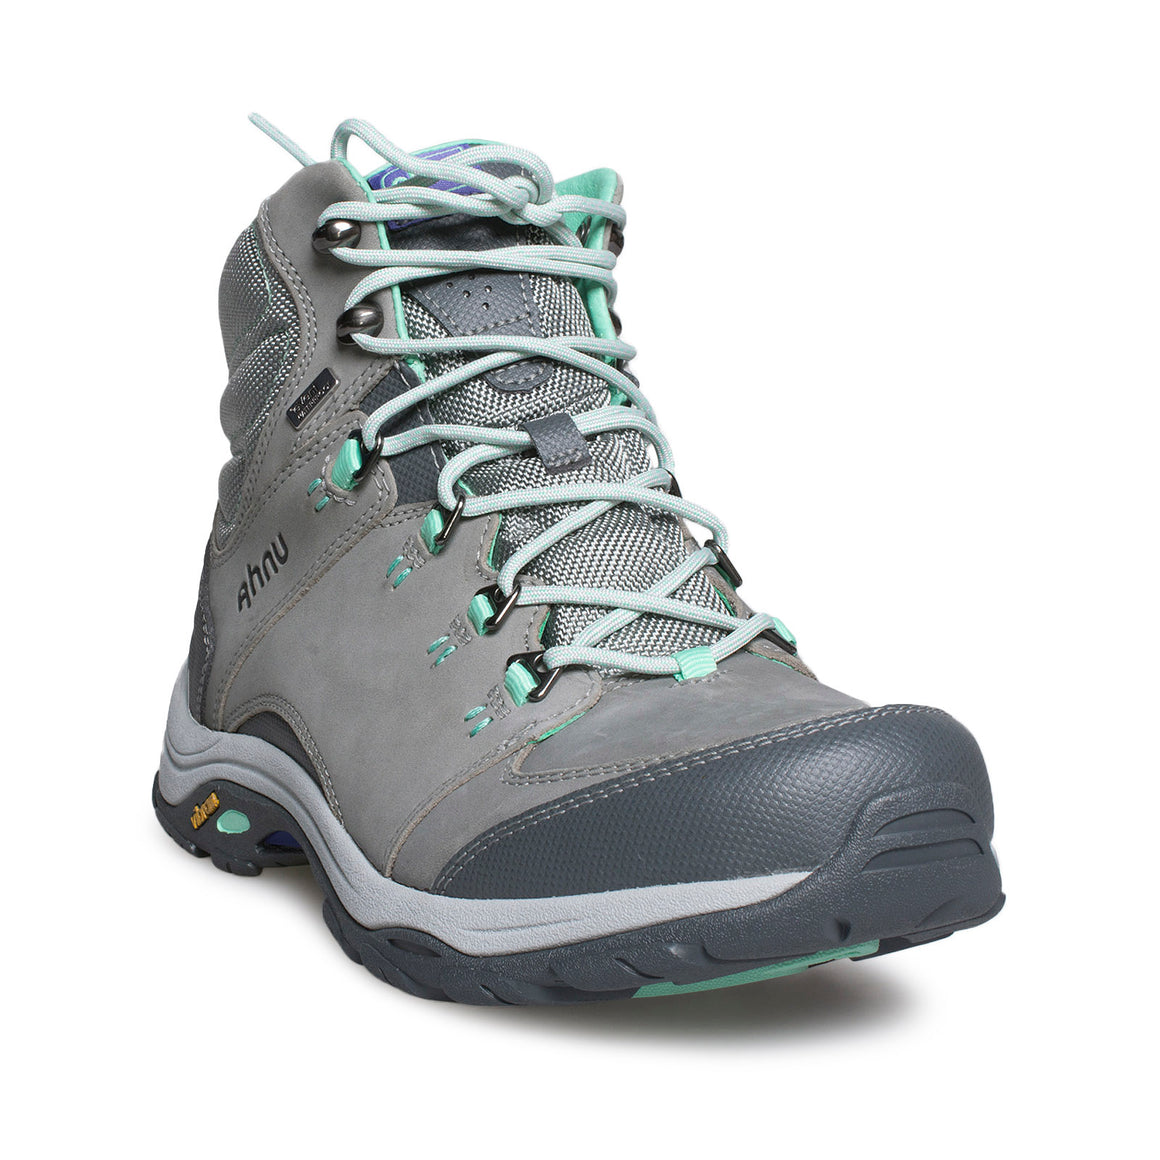 Ahnu Montara III Boot Event Wild Dove - Women's